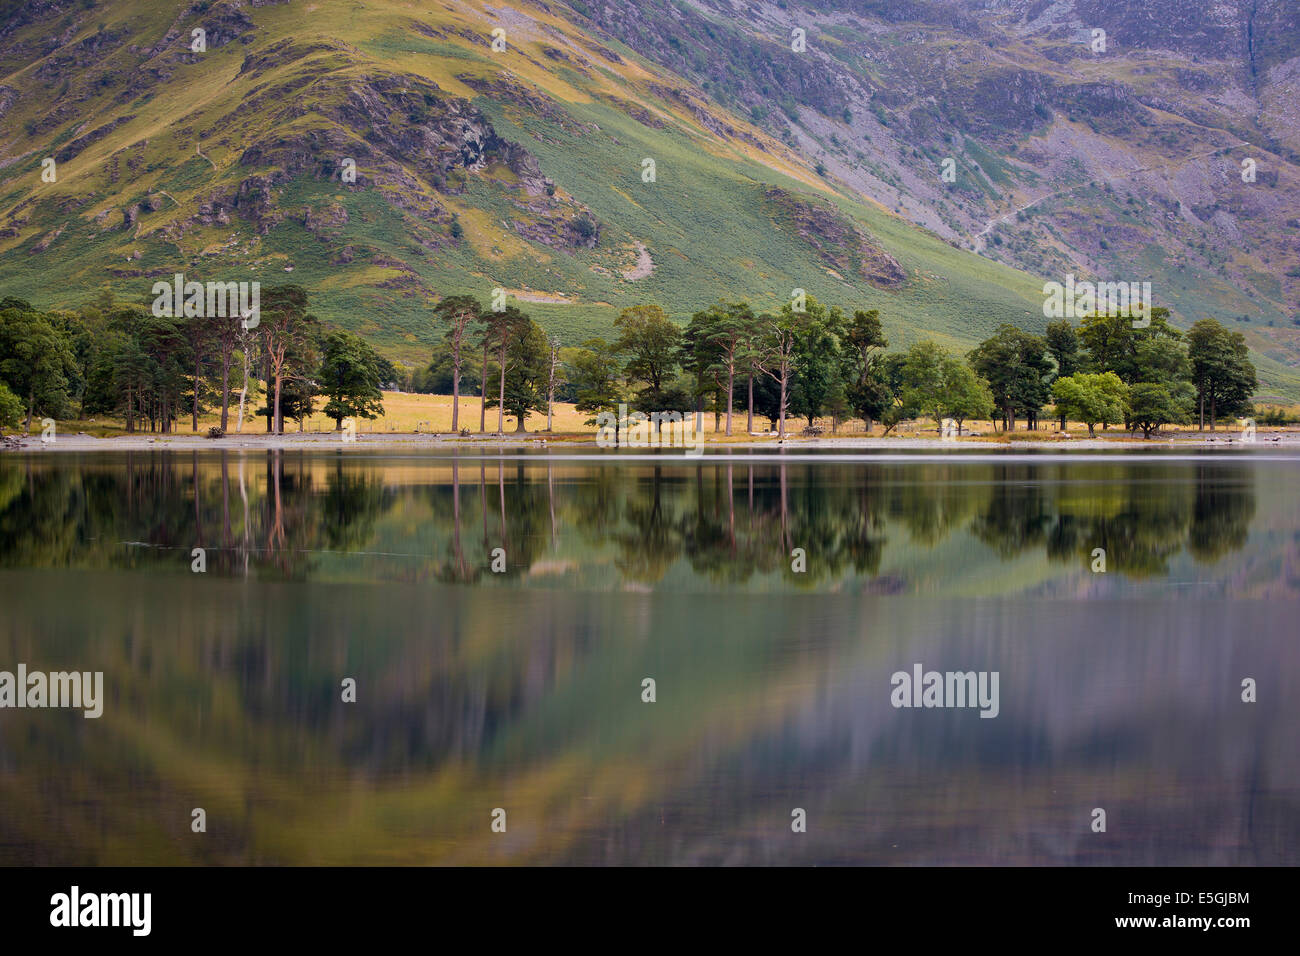 Pre-dawn reflections on Buttermere Lake, Cumbria, Lake District, England - Stock Image